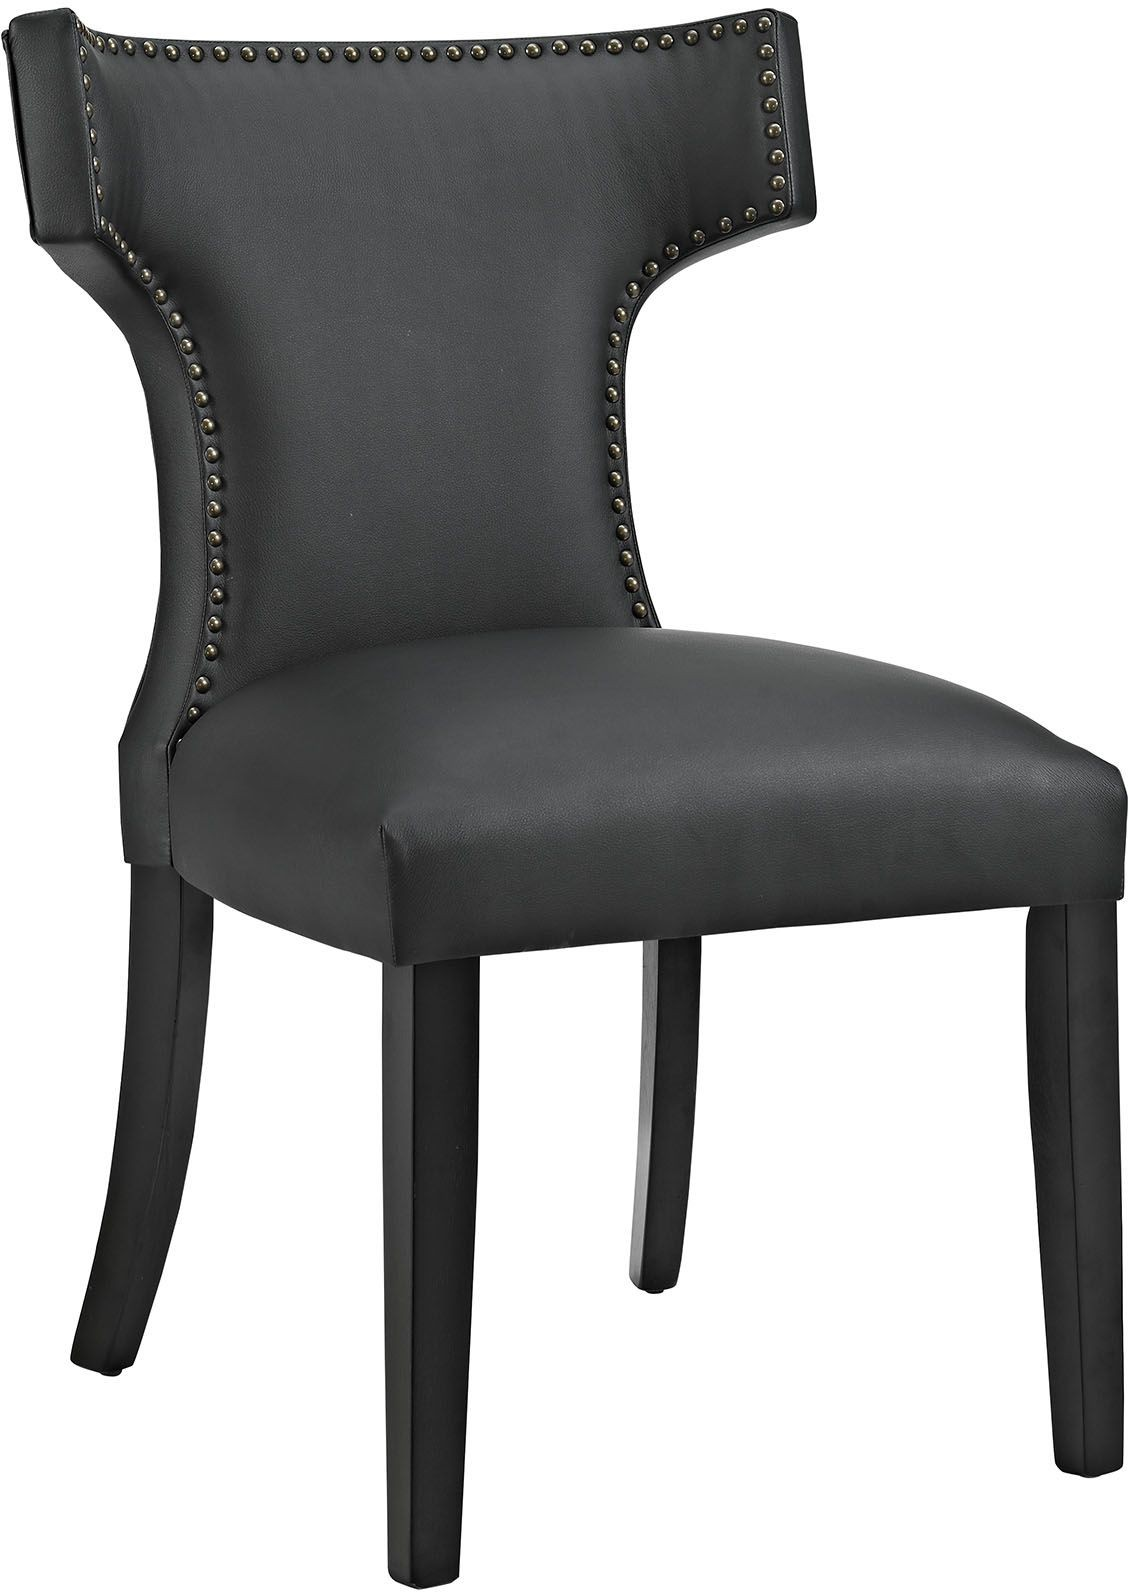 Curve Black Vinyl Dining Chair from Renegade Coleman  : eei 2220 blk from colemanfurniture.com size 1128 x 1592 jpeg 158kB